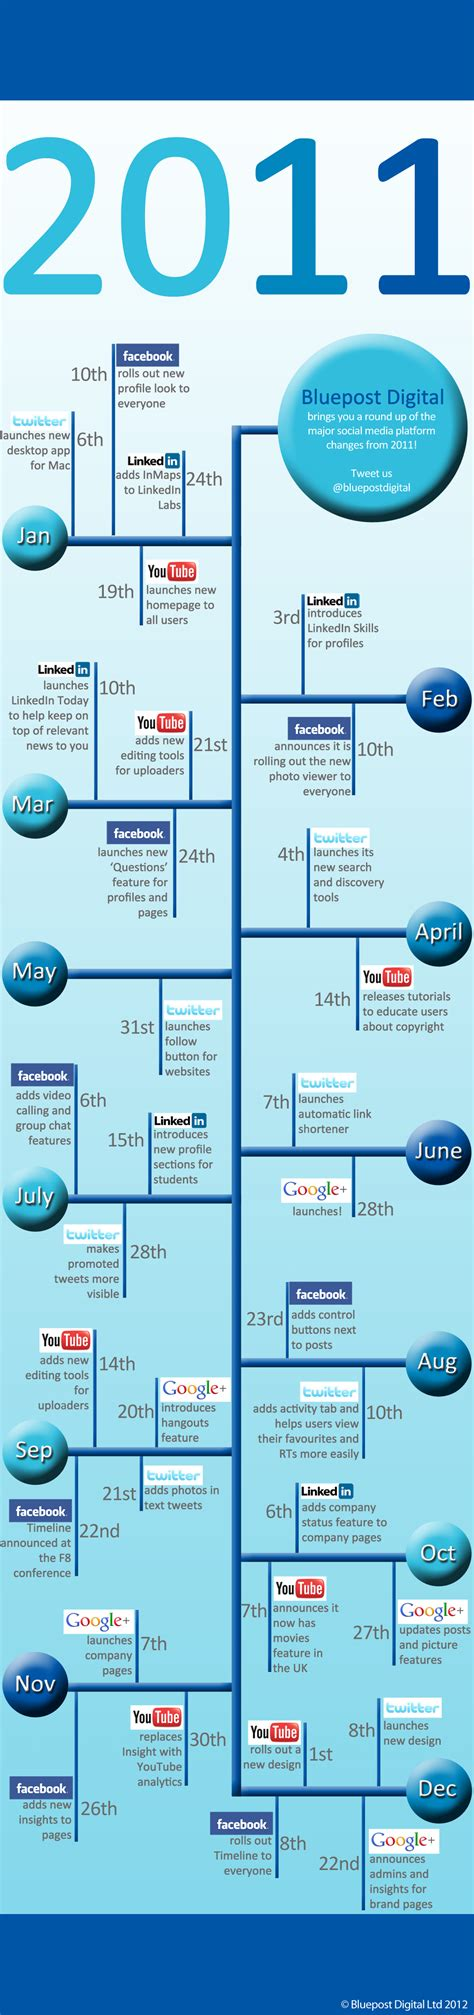 Social Timeline: How Did Social Network Sites Change in